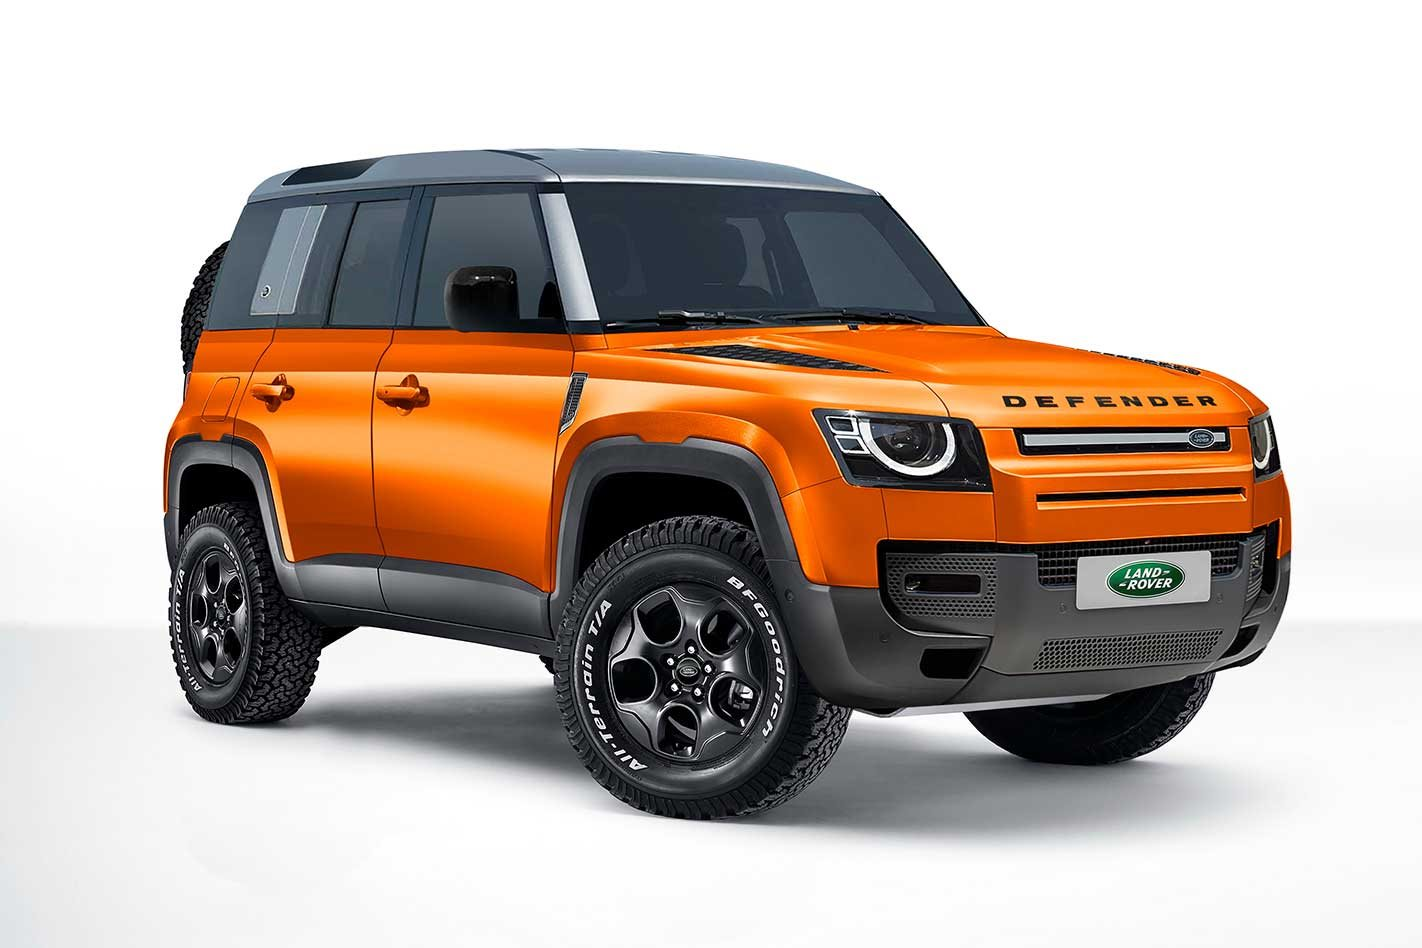 Land Rover Defender Name To Expand To Spin Off New Models